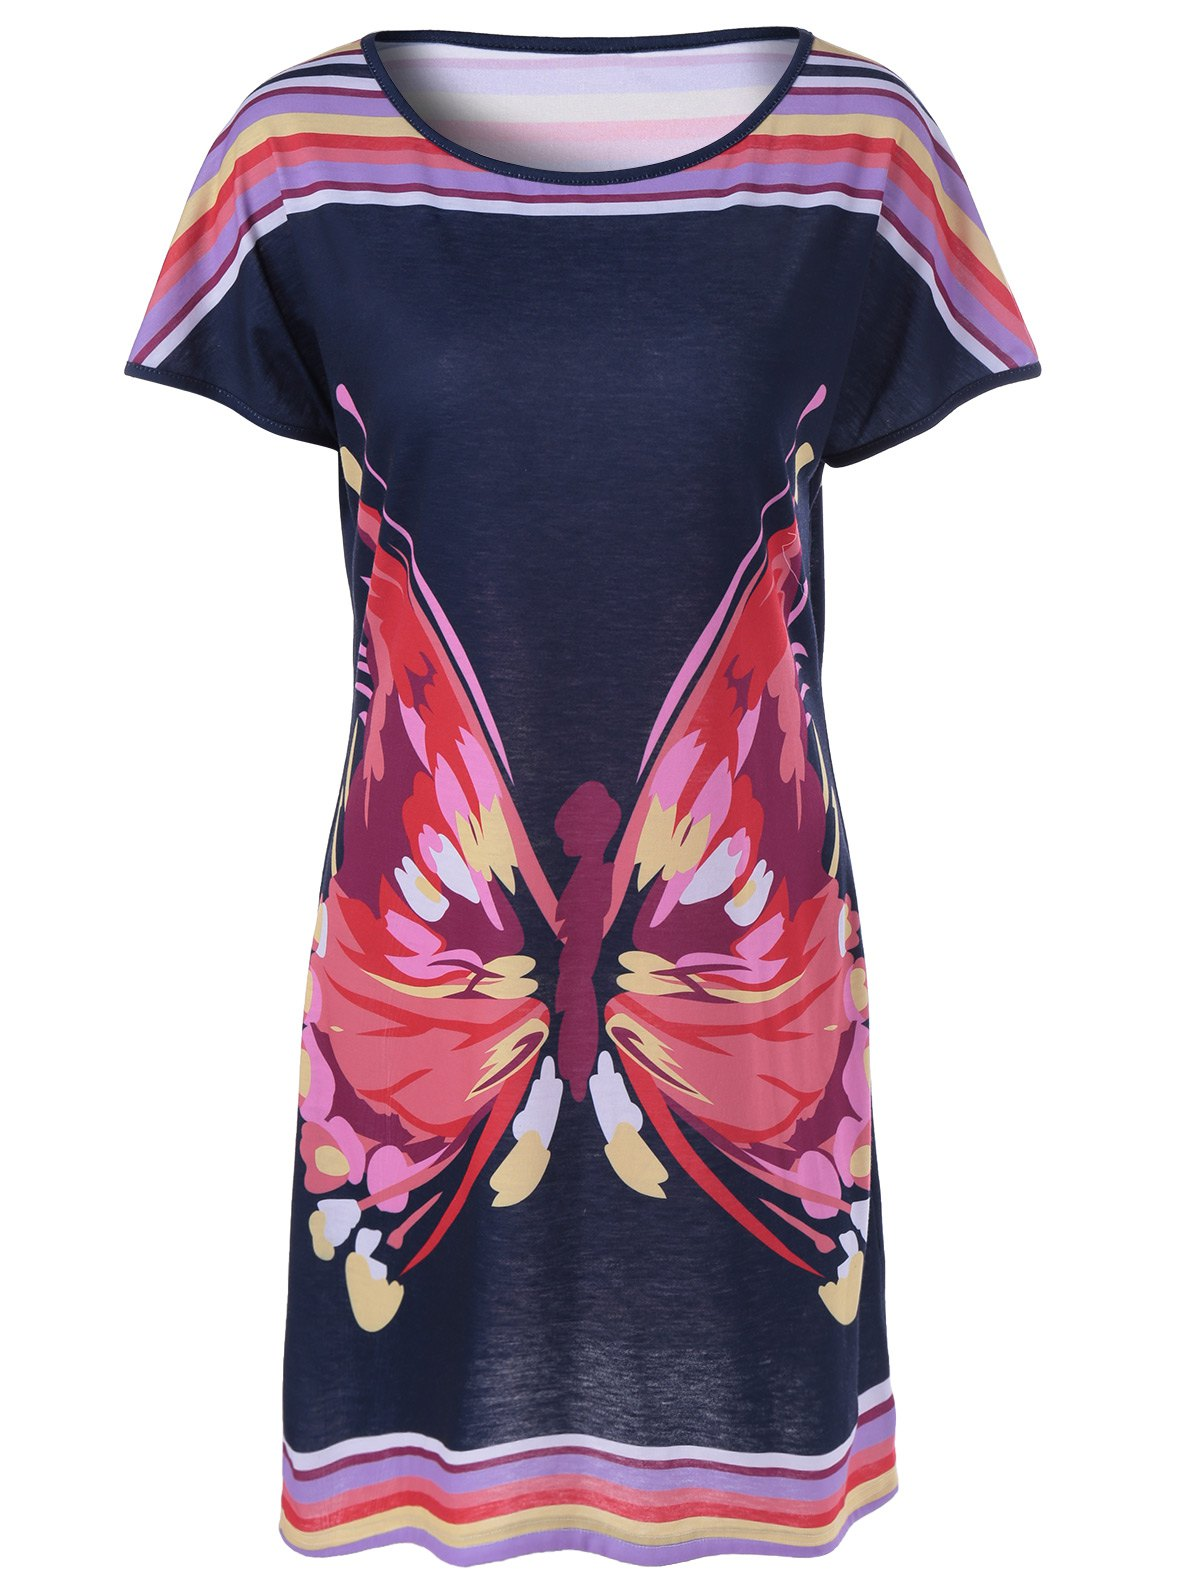 Fashionable Women's Striped Butterfly Print Dress - COLORMIX M